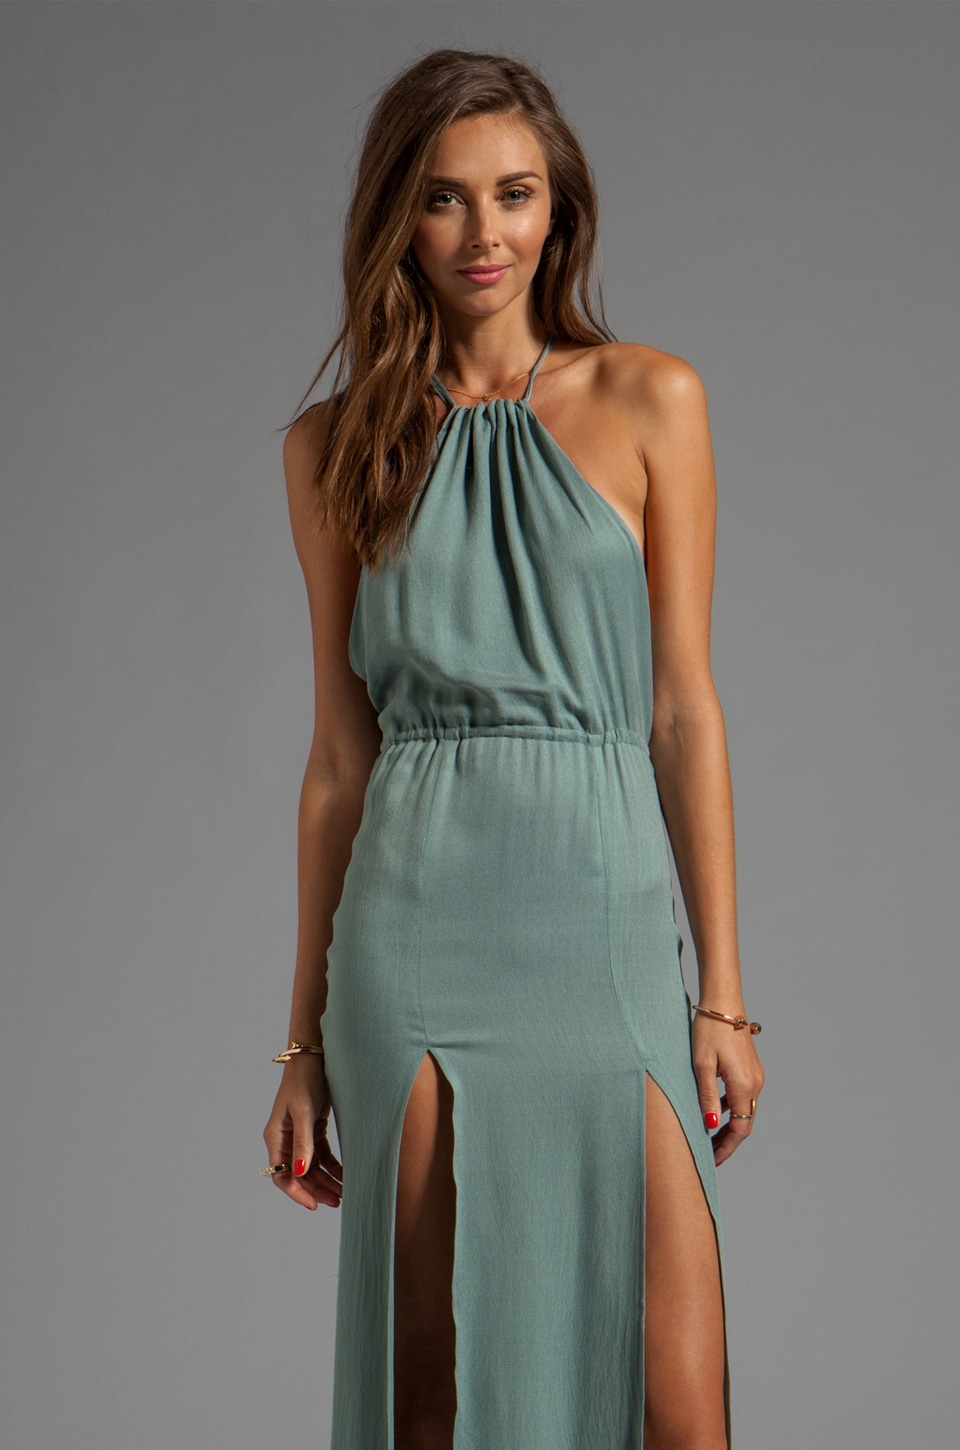 STONE_COLD_FOX Onyx Gown in Seafoam Green | REVOLVE